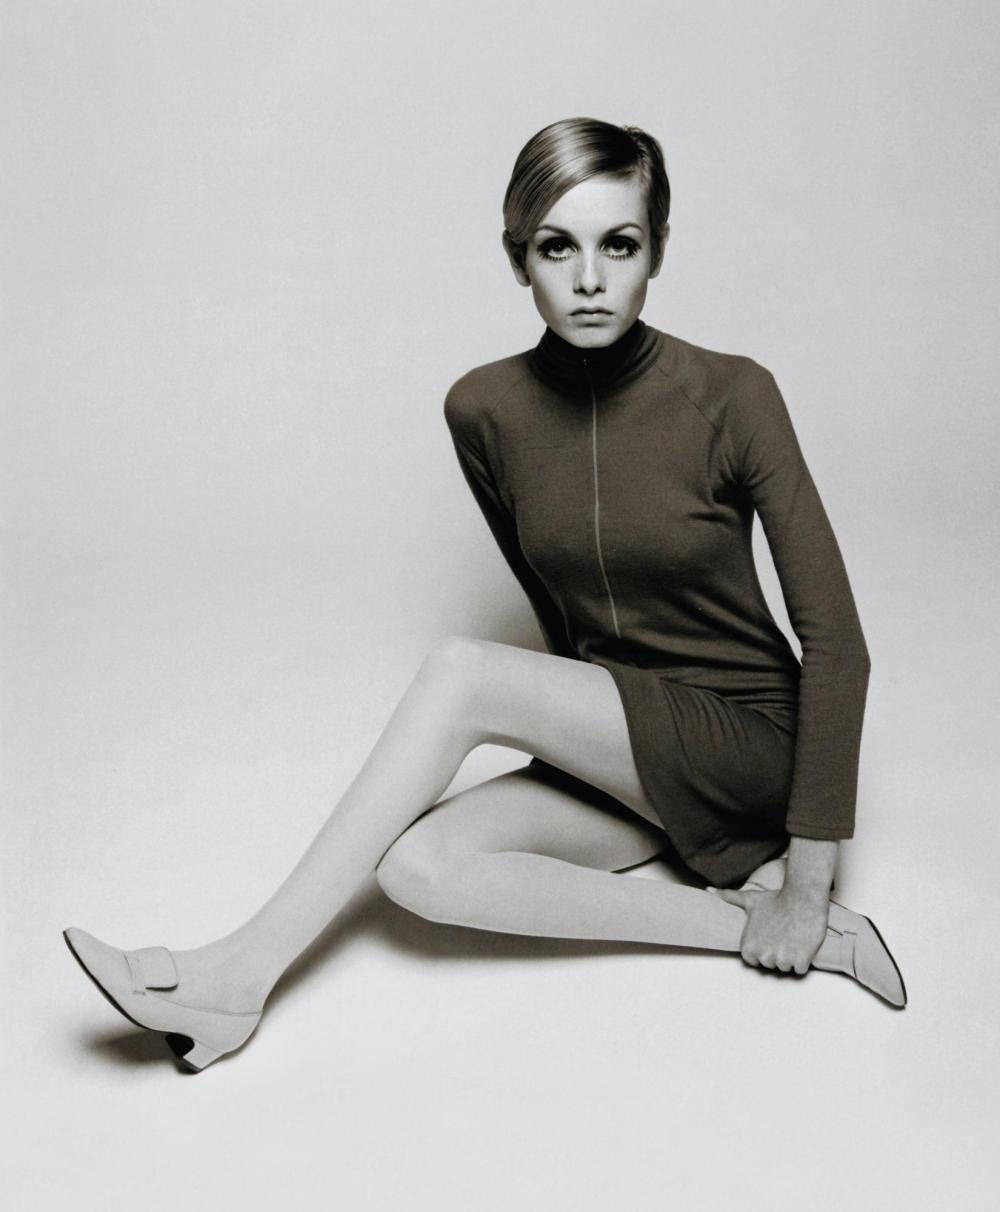 Twiggy photographed by Barry Lategan in 1966